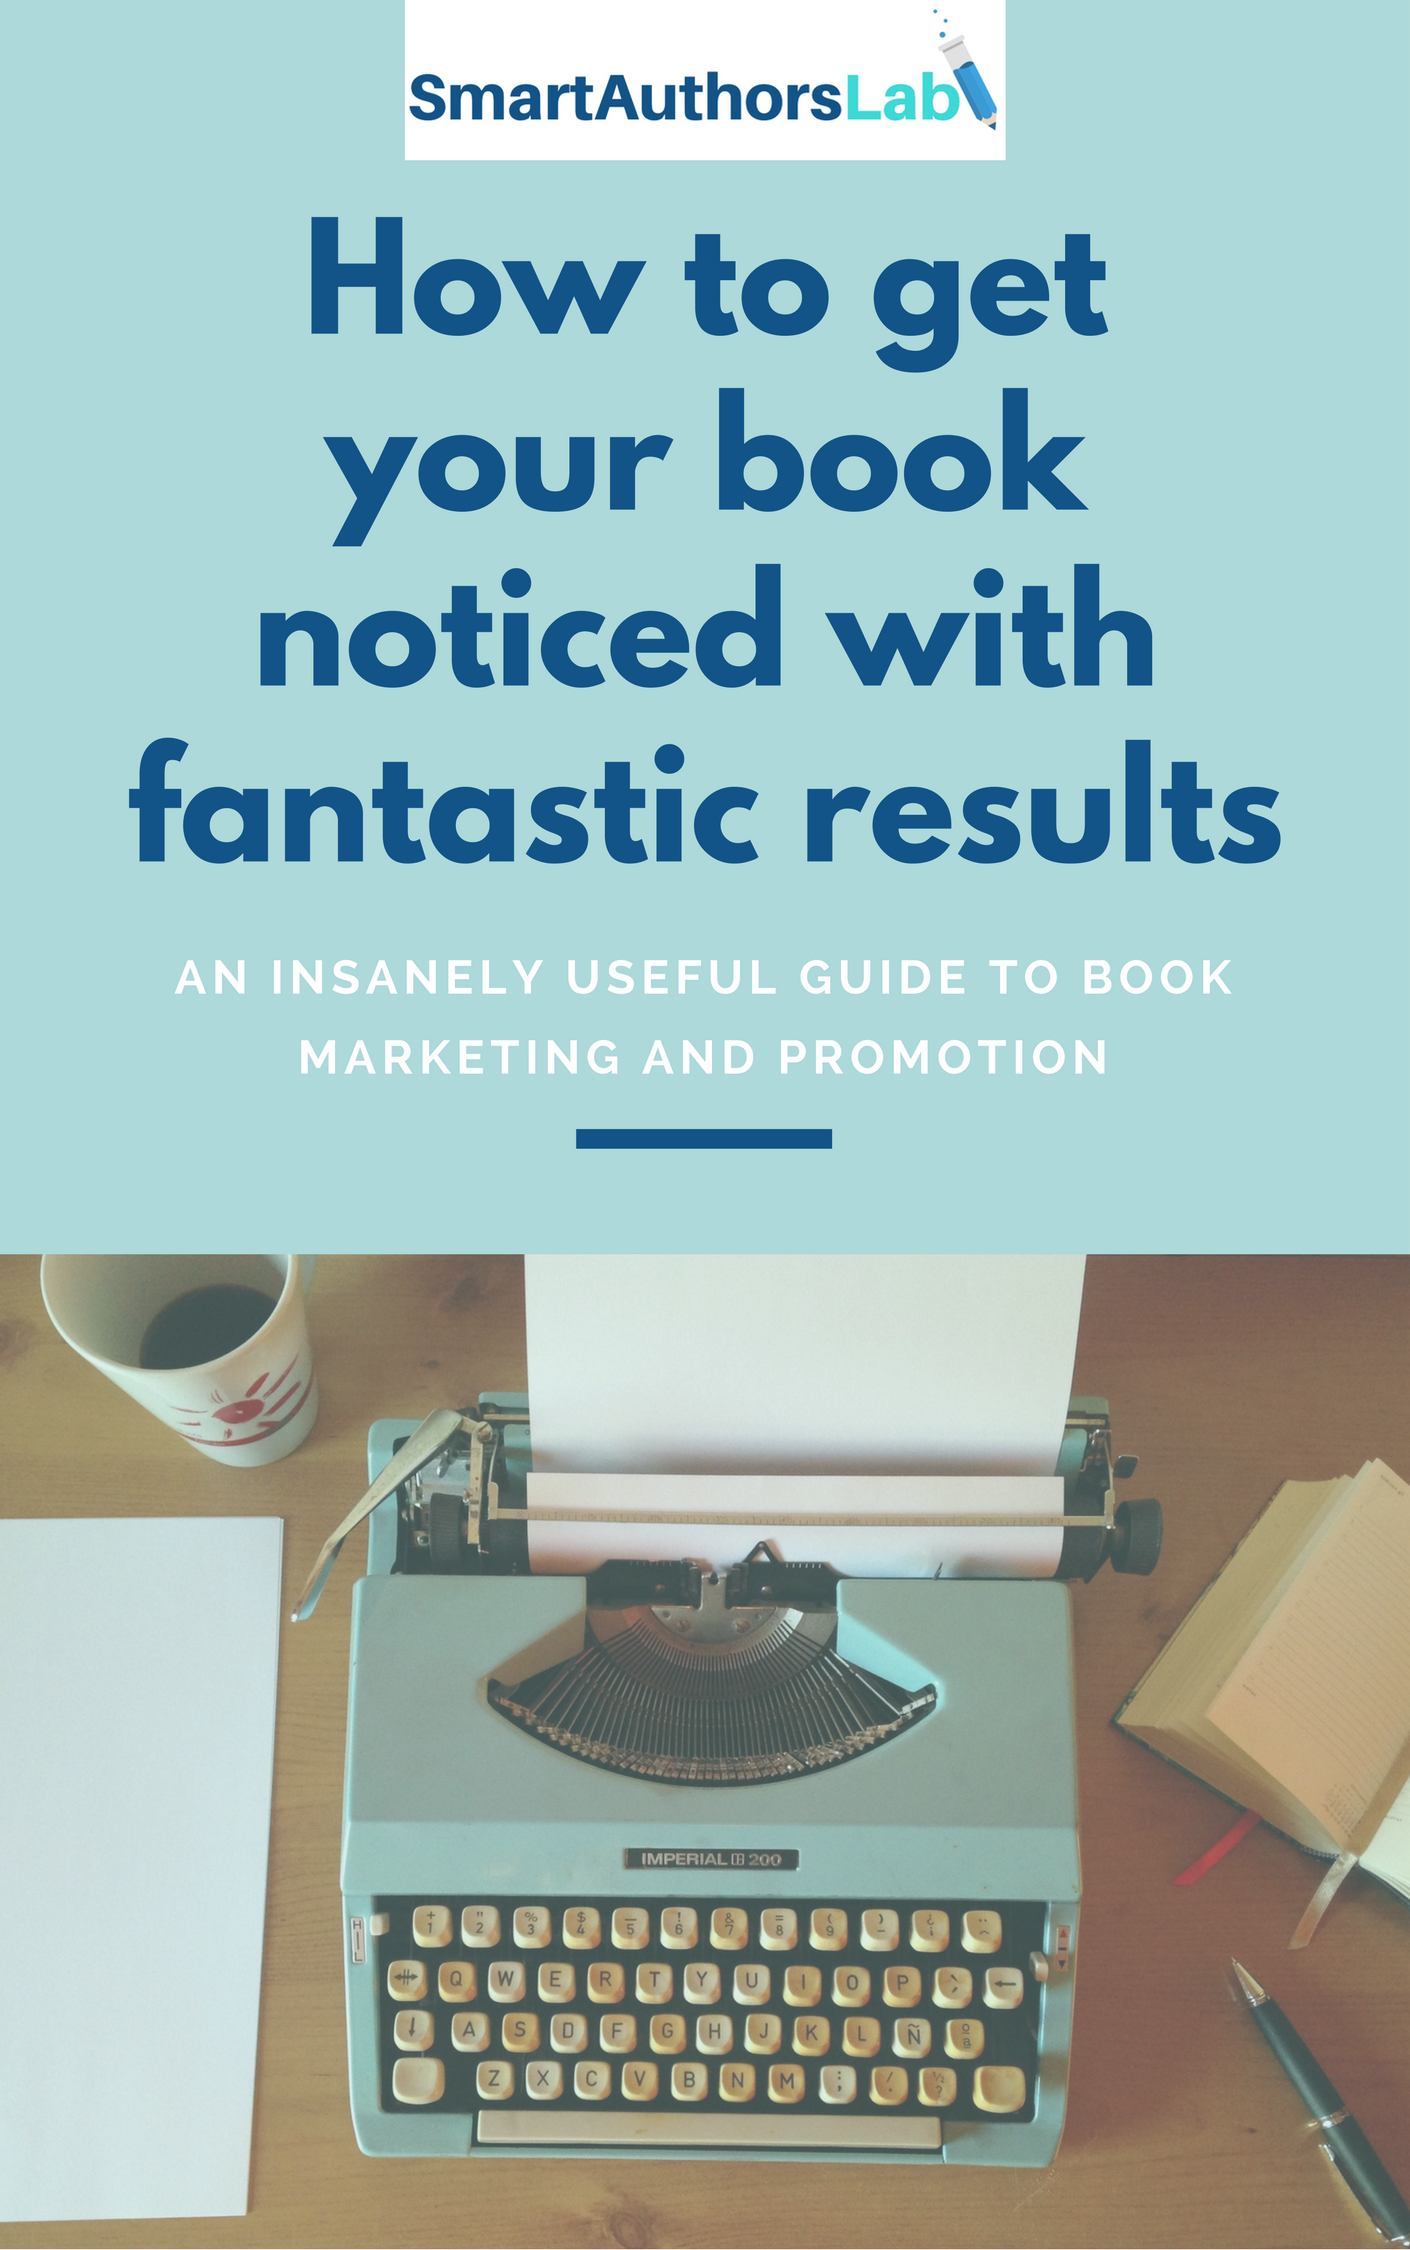 How to get your book noticed with fantastic results